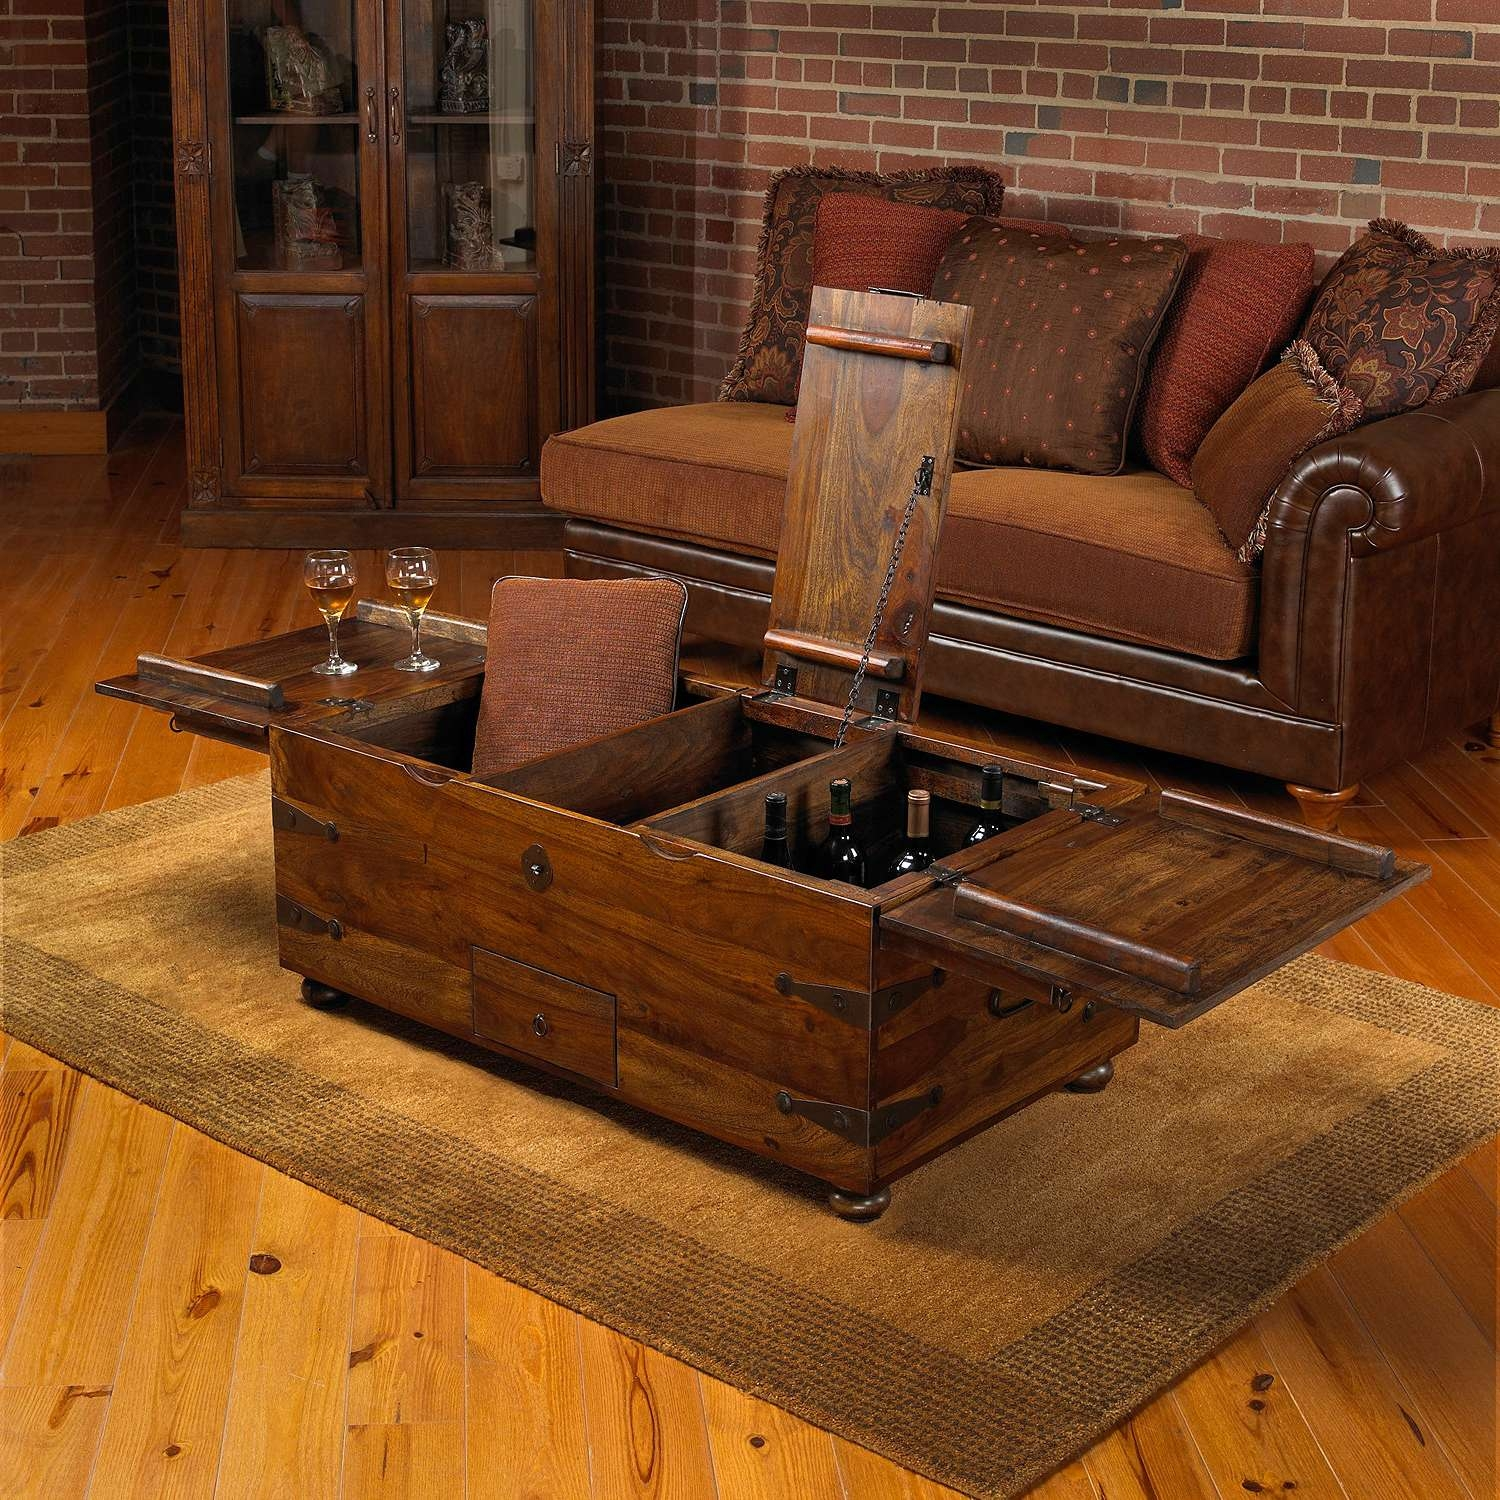 Thakat Bar Box Trunk Coffee Table – Wine Enthusiast Inside Trendy Trunk Chest Coffee Tables (View 18 of 20)